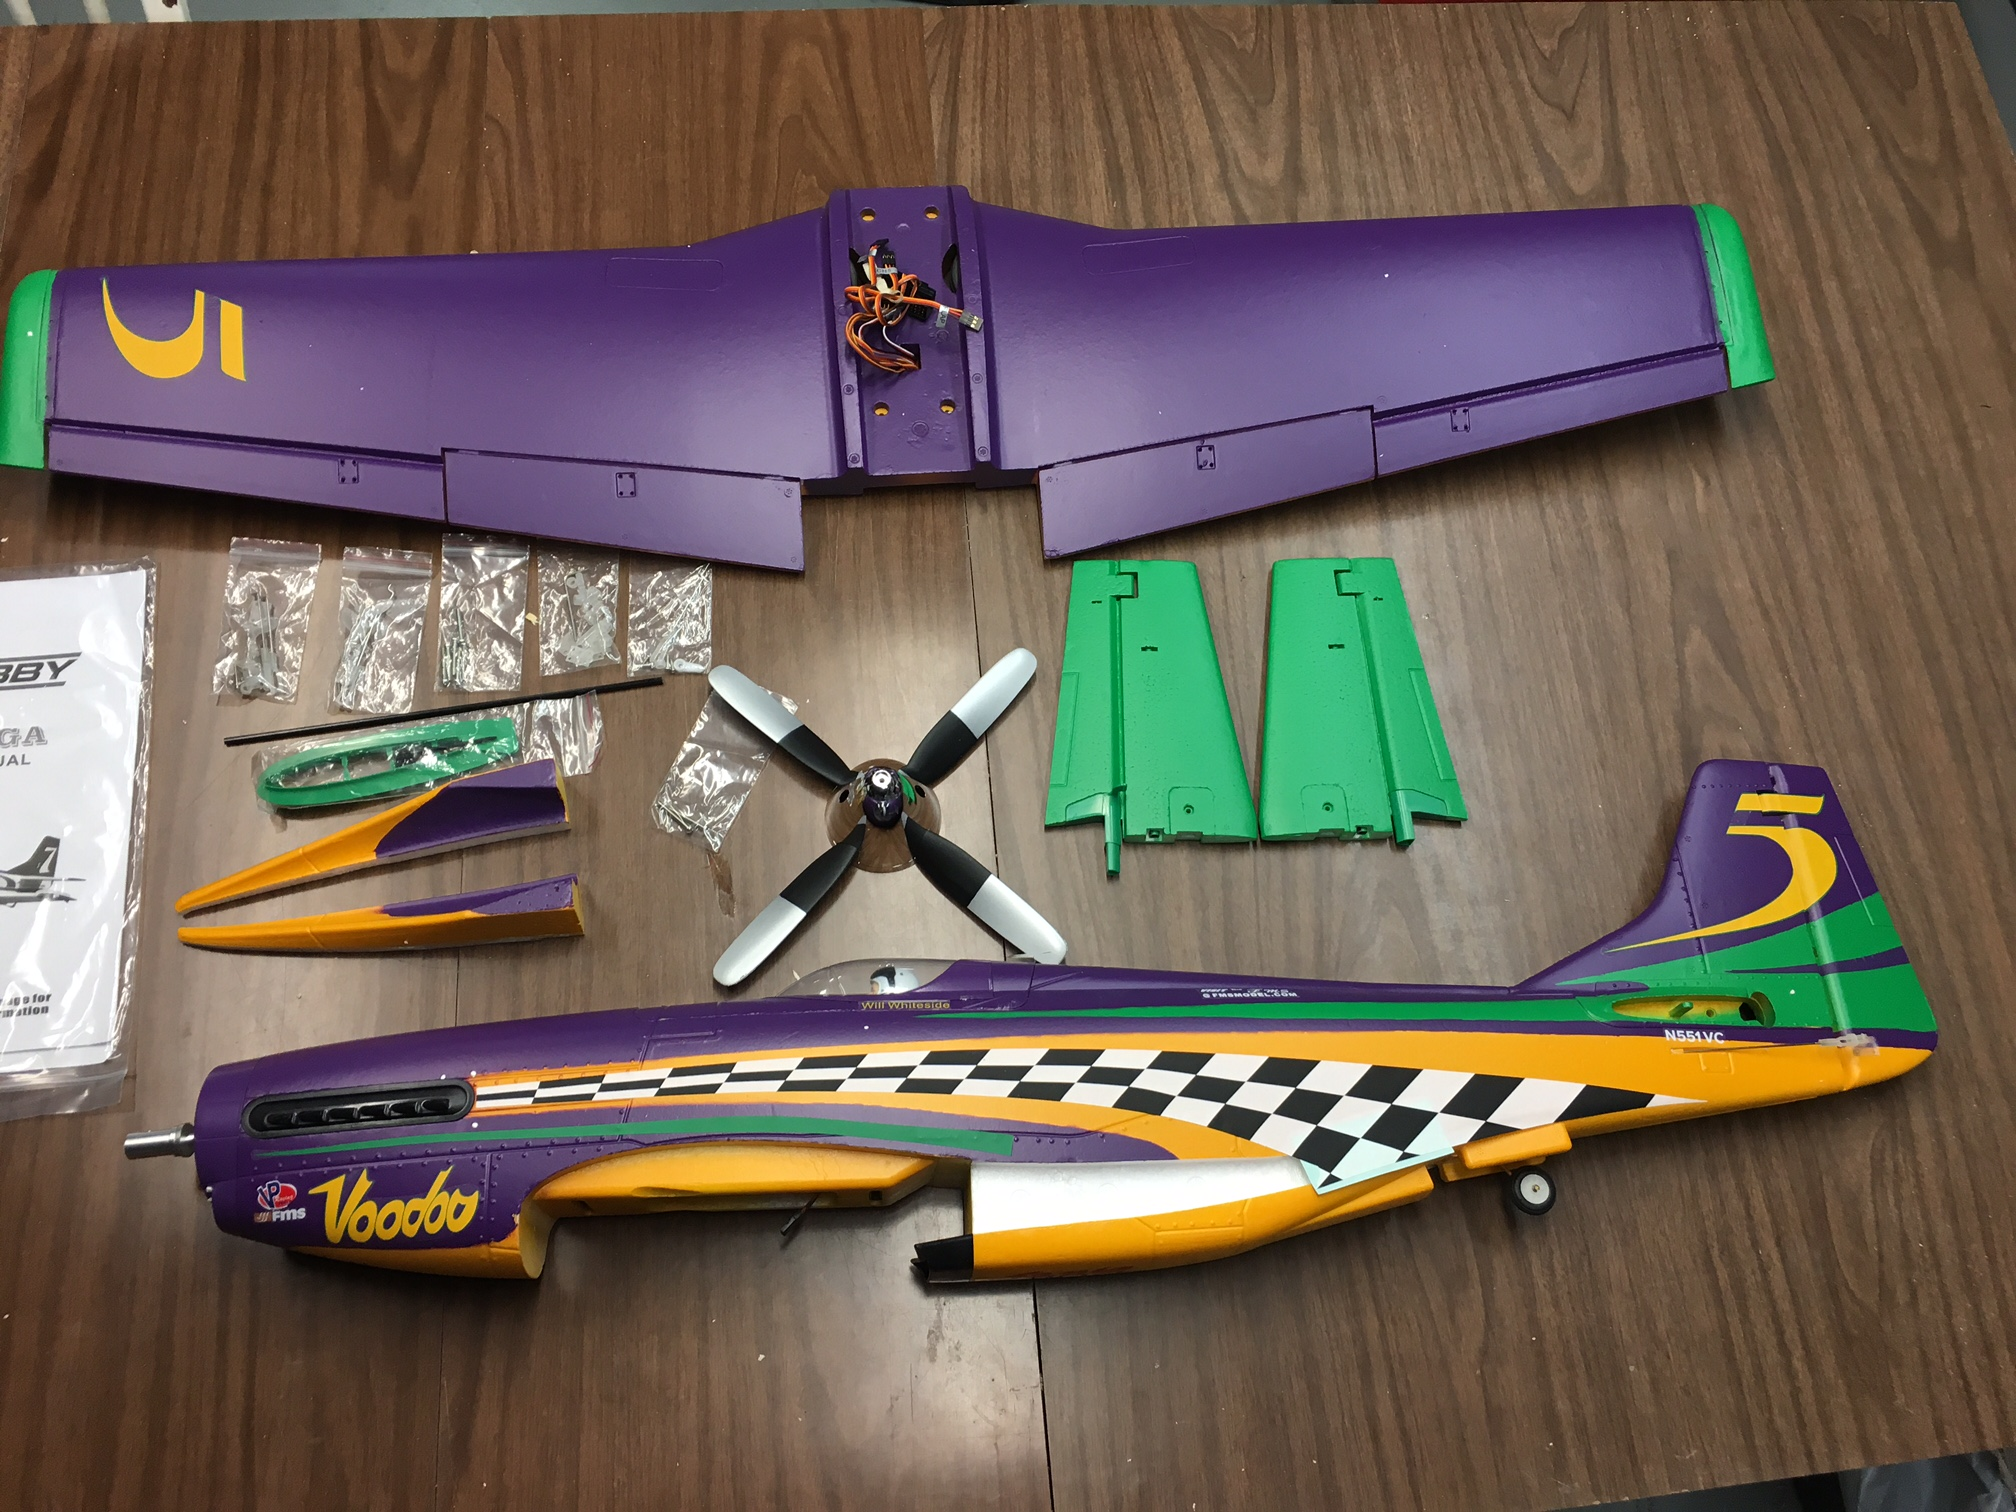 Madison : Voodoo p 51 rc plane